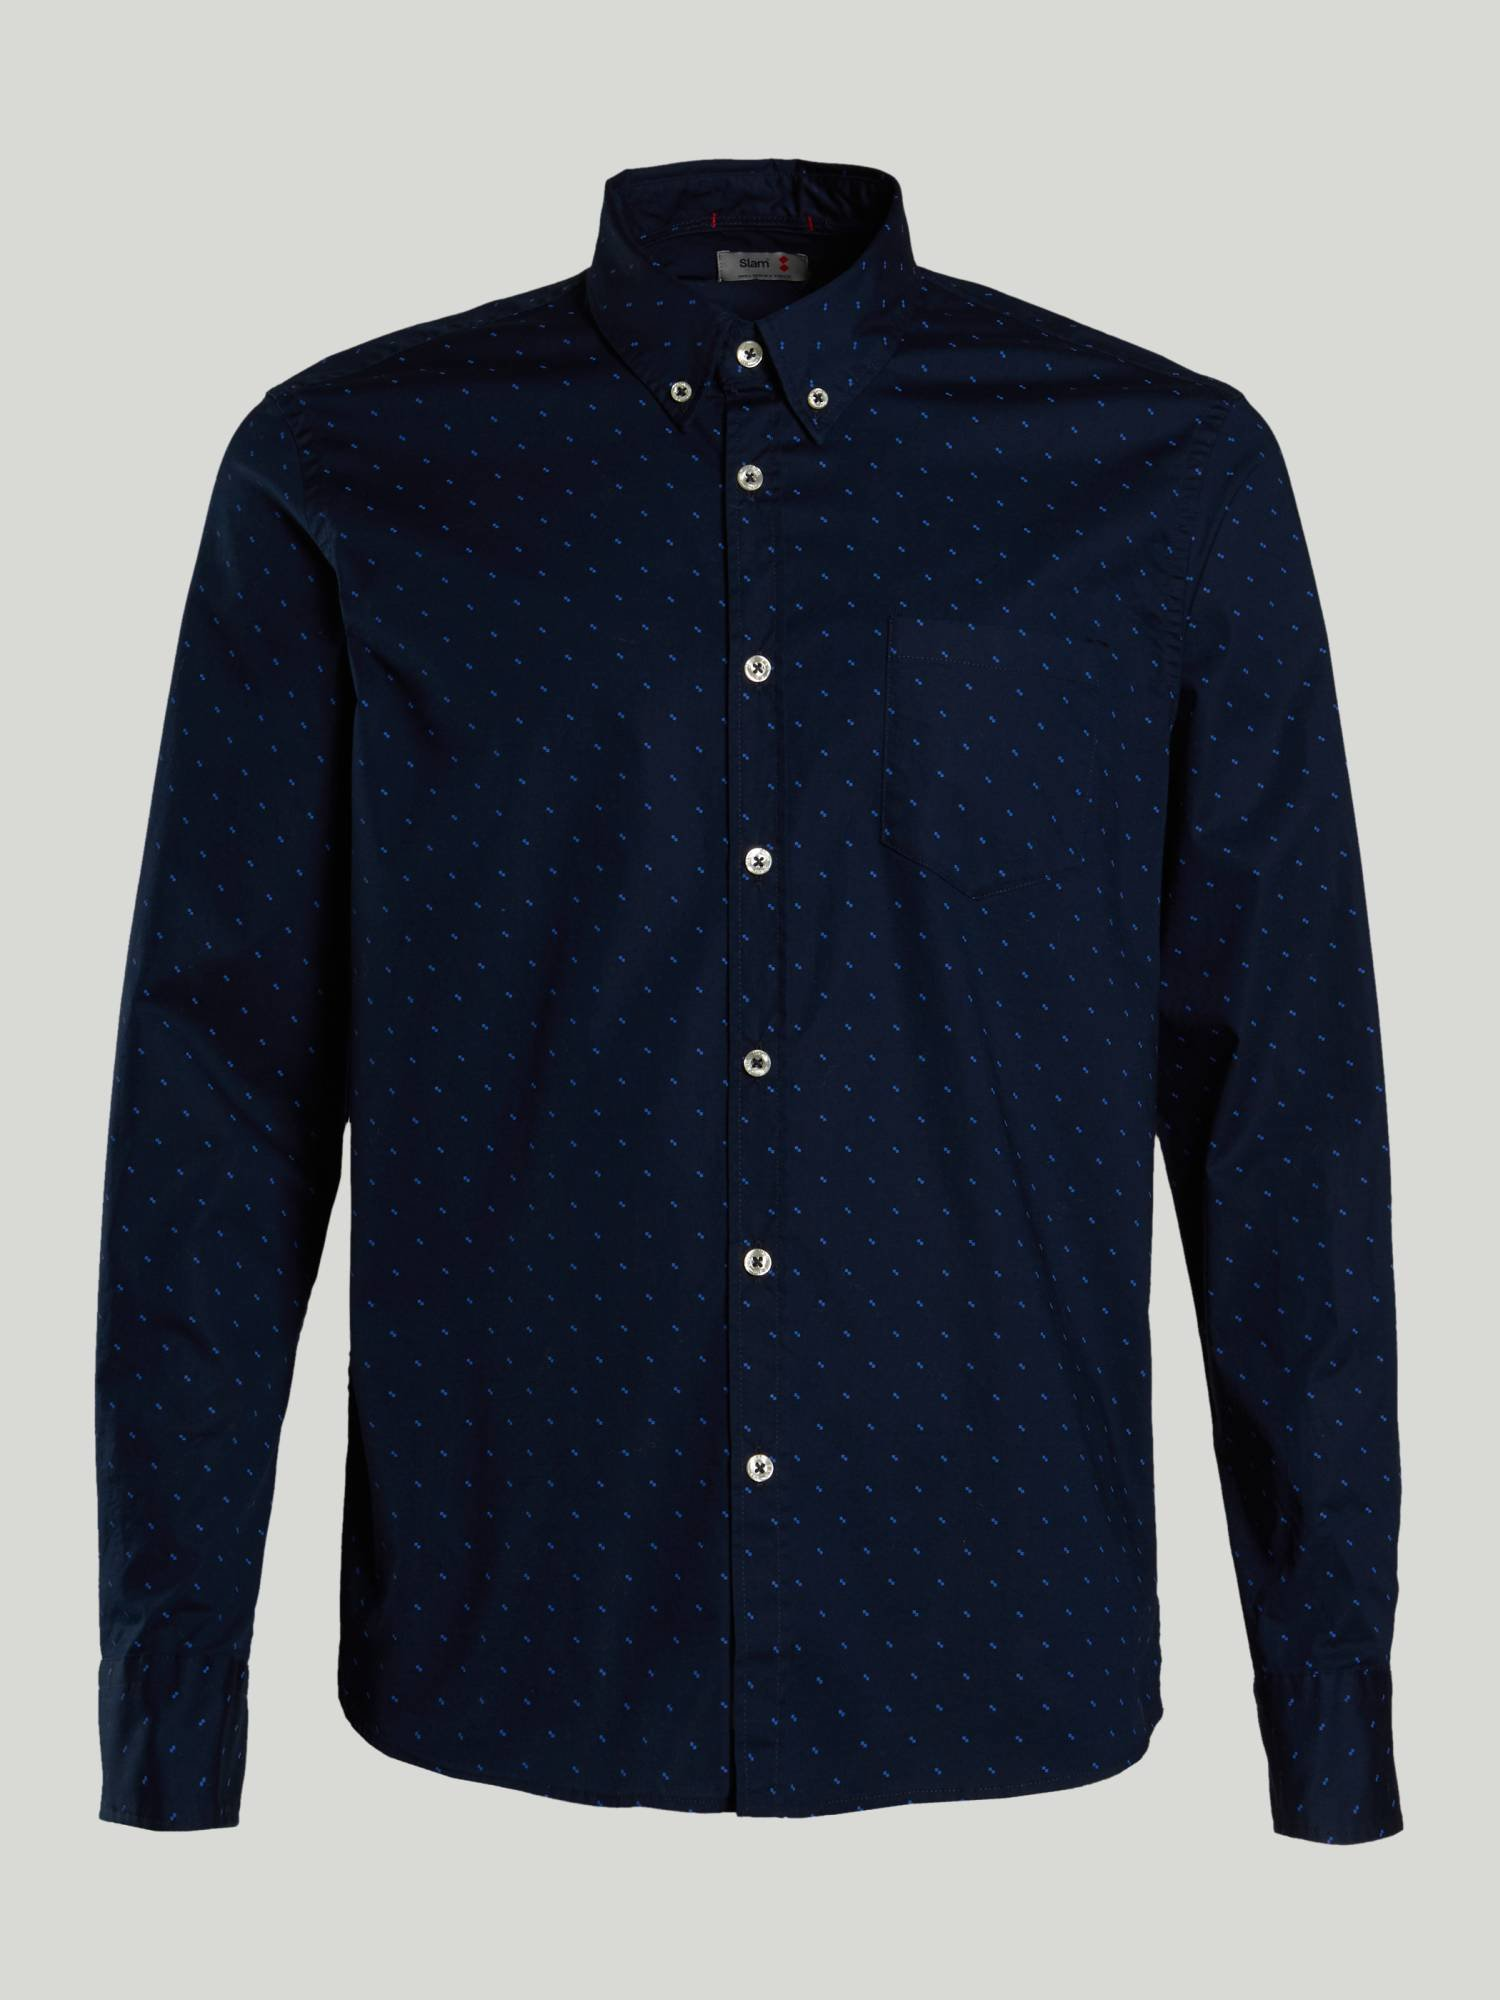 Shirt A148 - Marinenblau